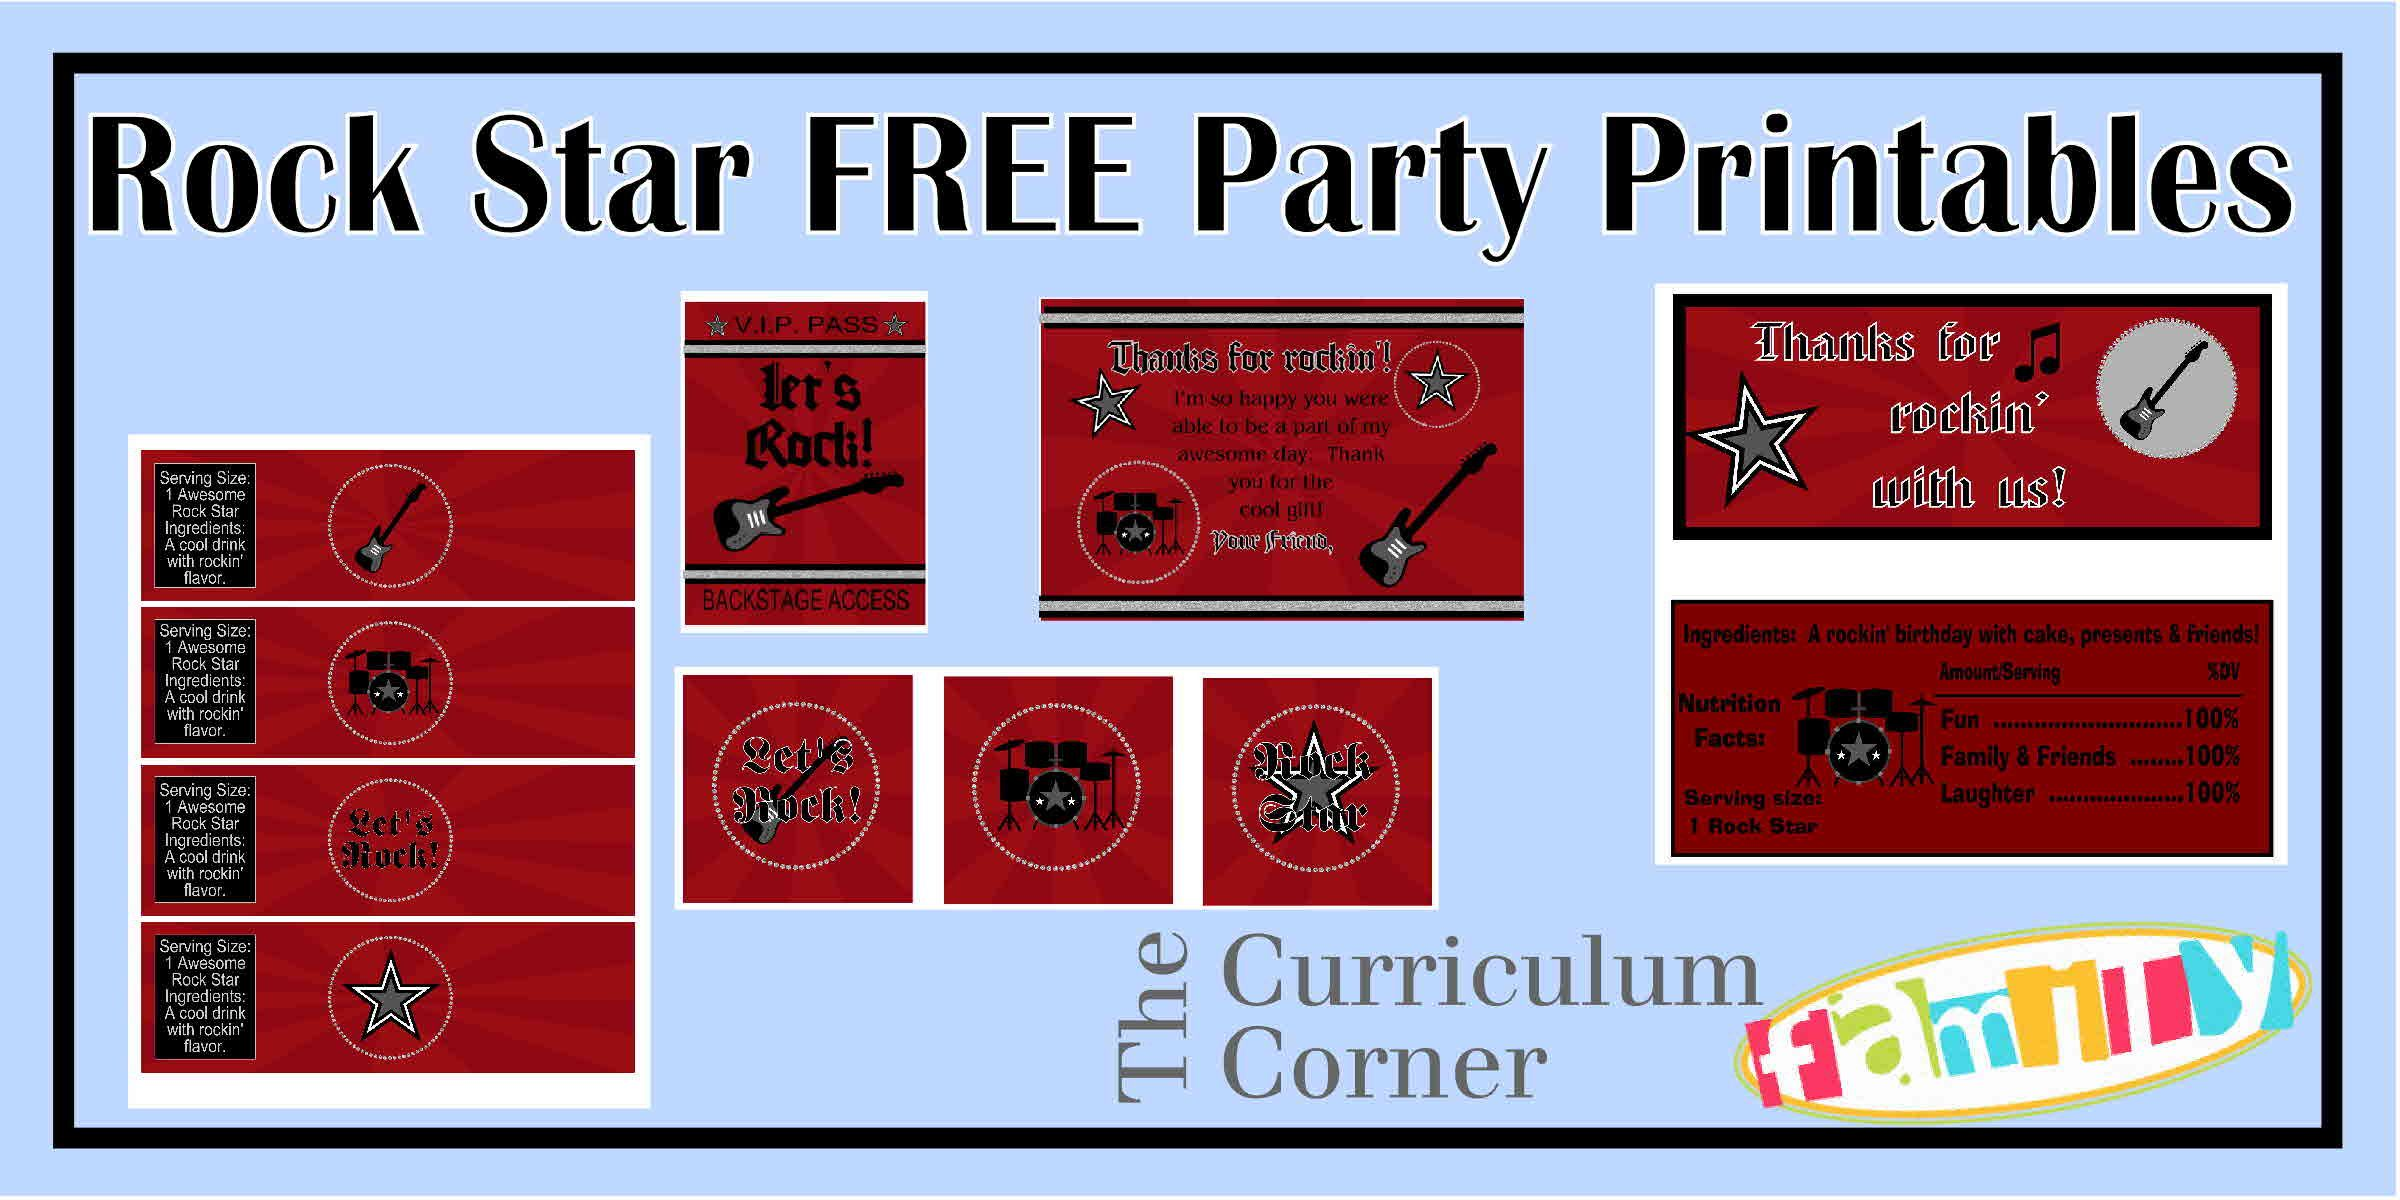 Freebie Rock Star Party Printables for your rock star's birthday